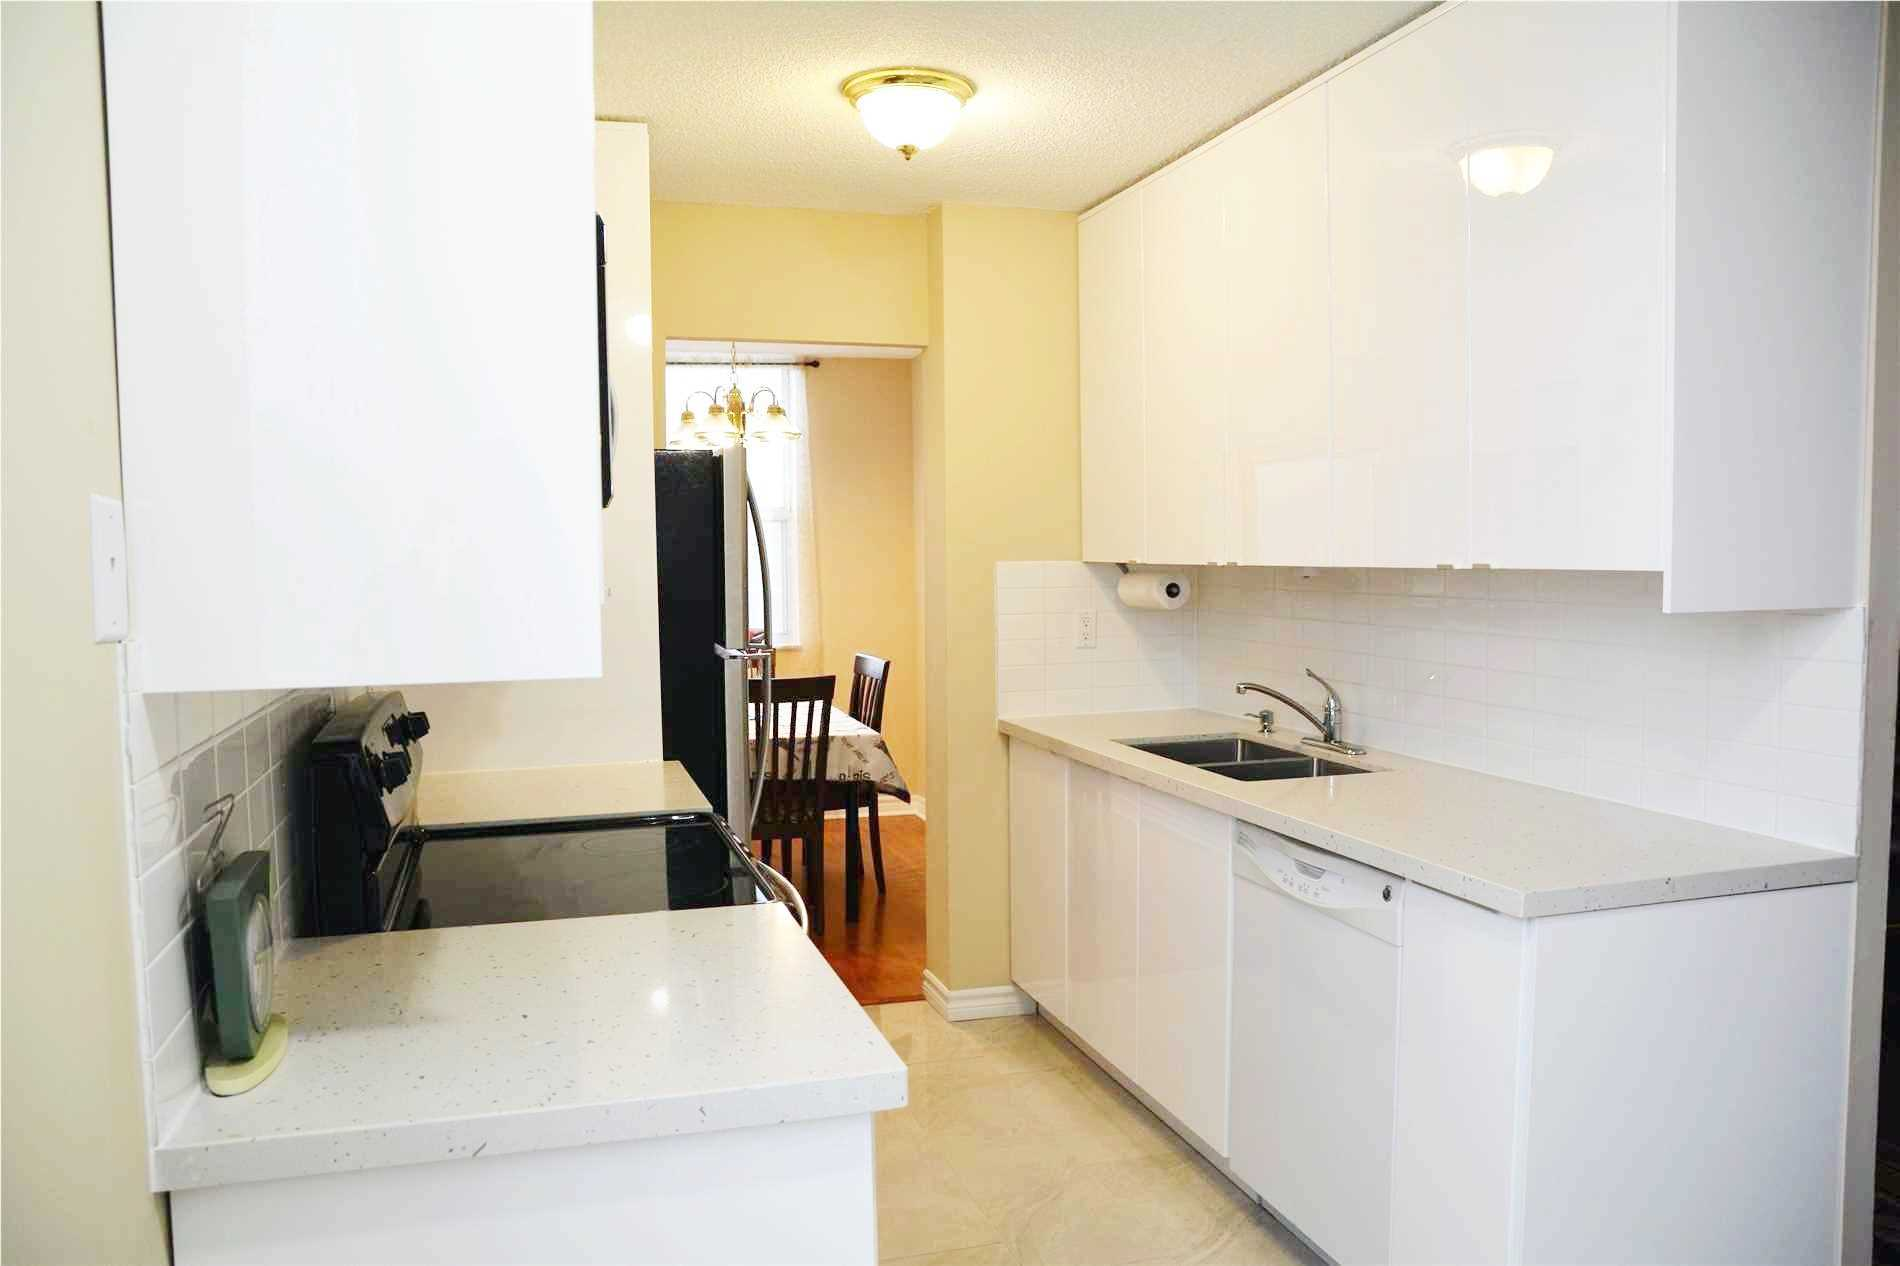 Image 10 of 14 showing inside of 3 Bedroom Condo Apt Apartment for Lease at 205 Hilda Ave Unit# 2104, Toronto M2M4B1